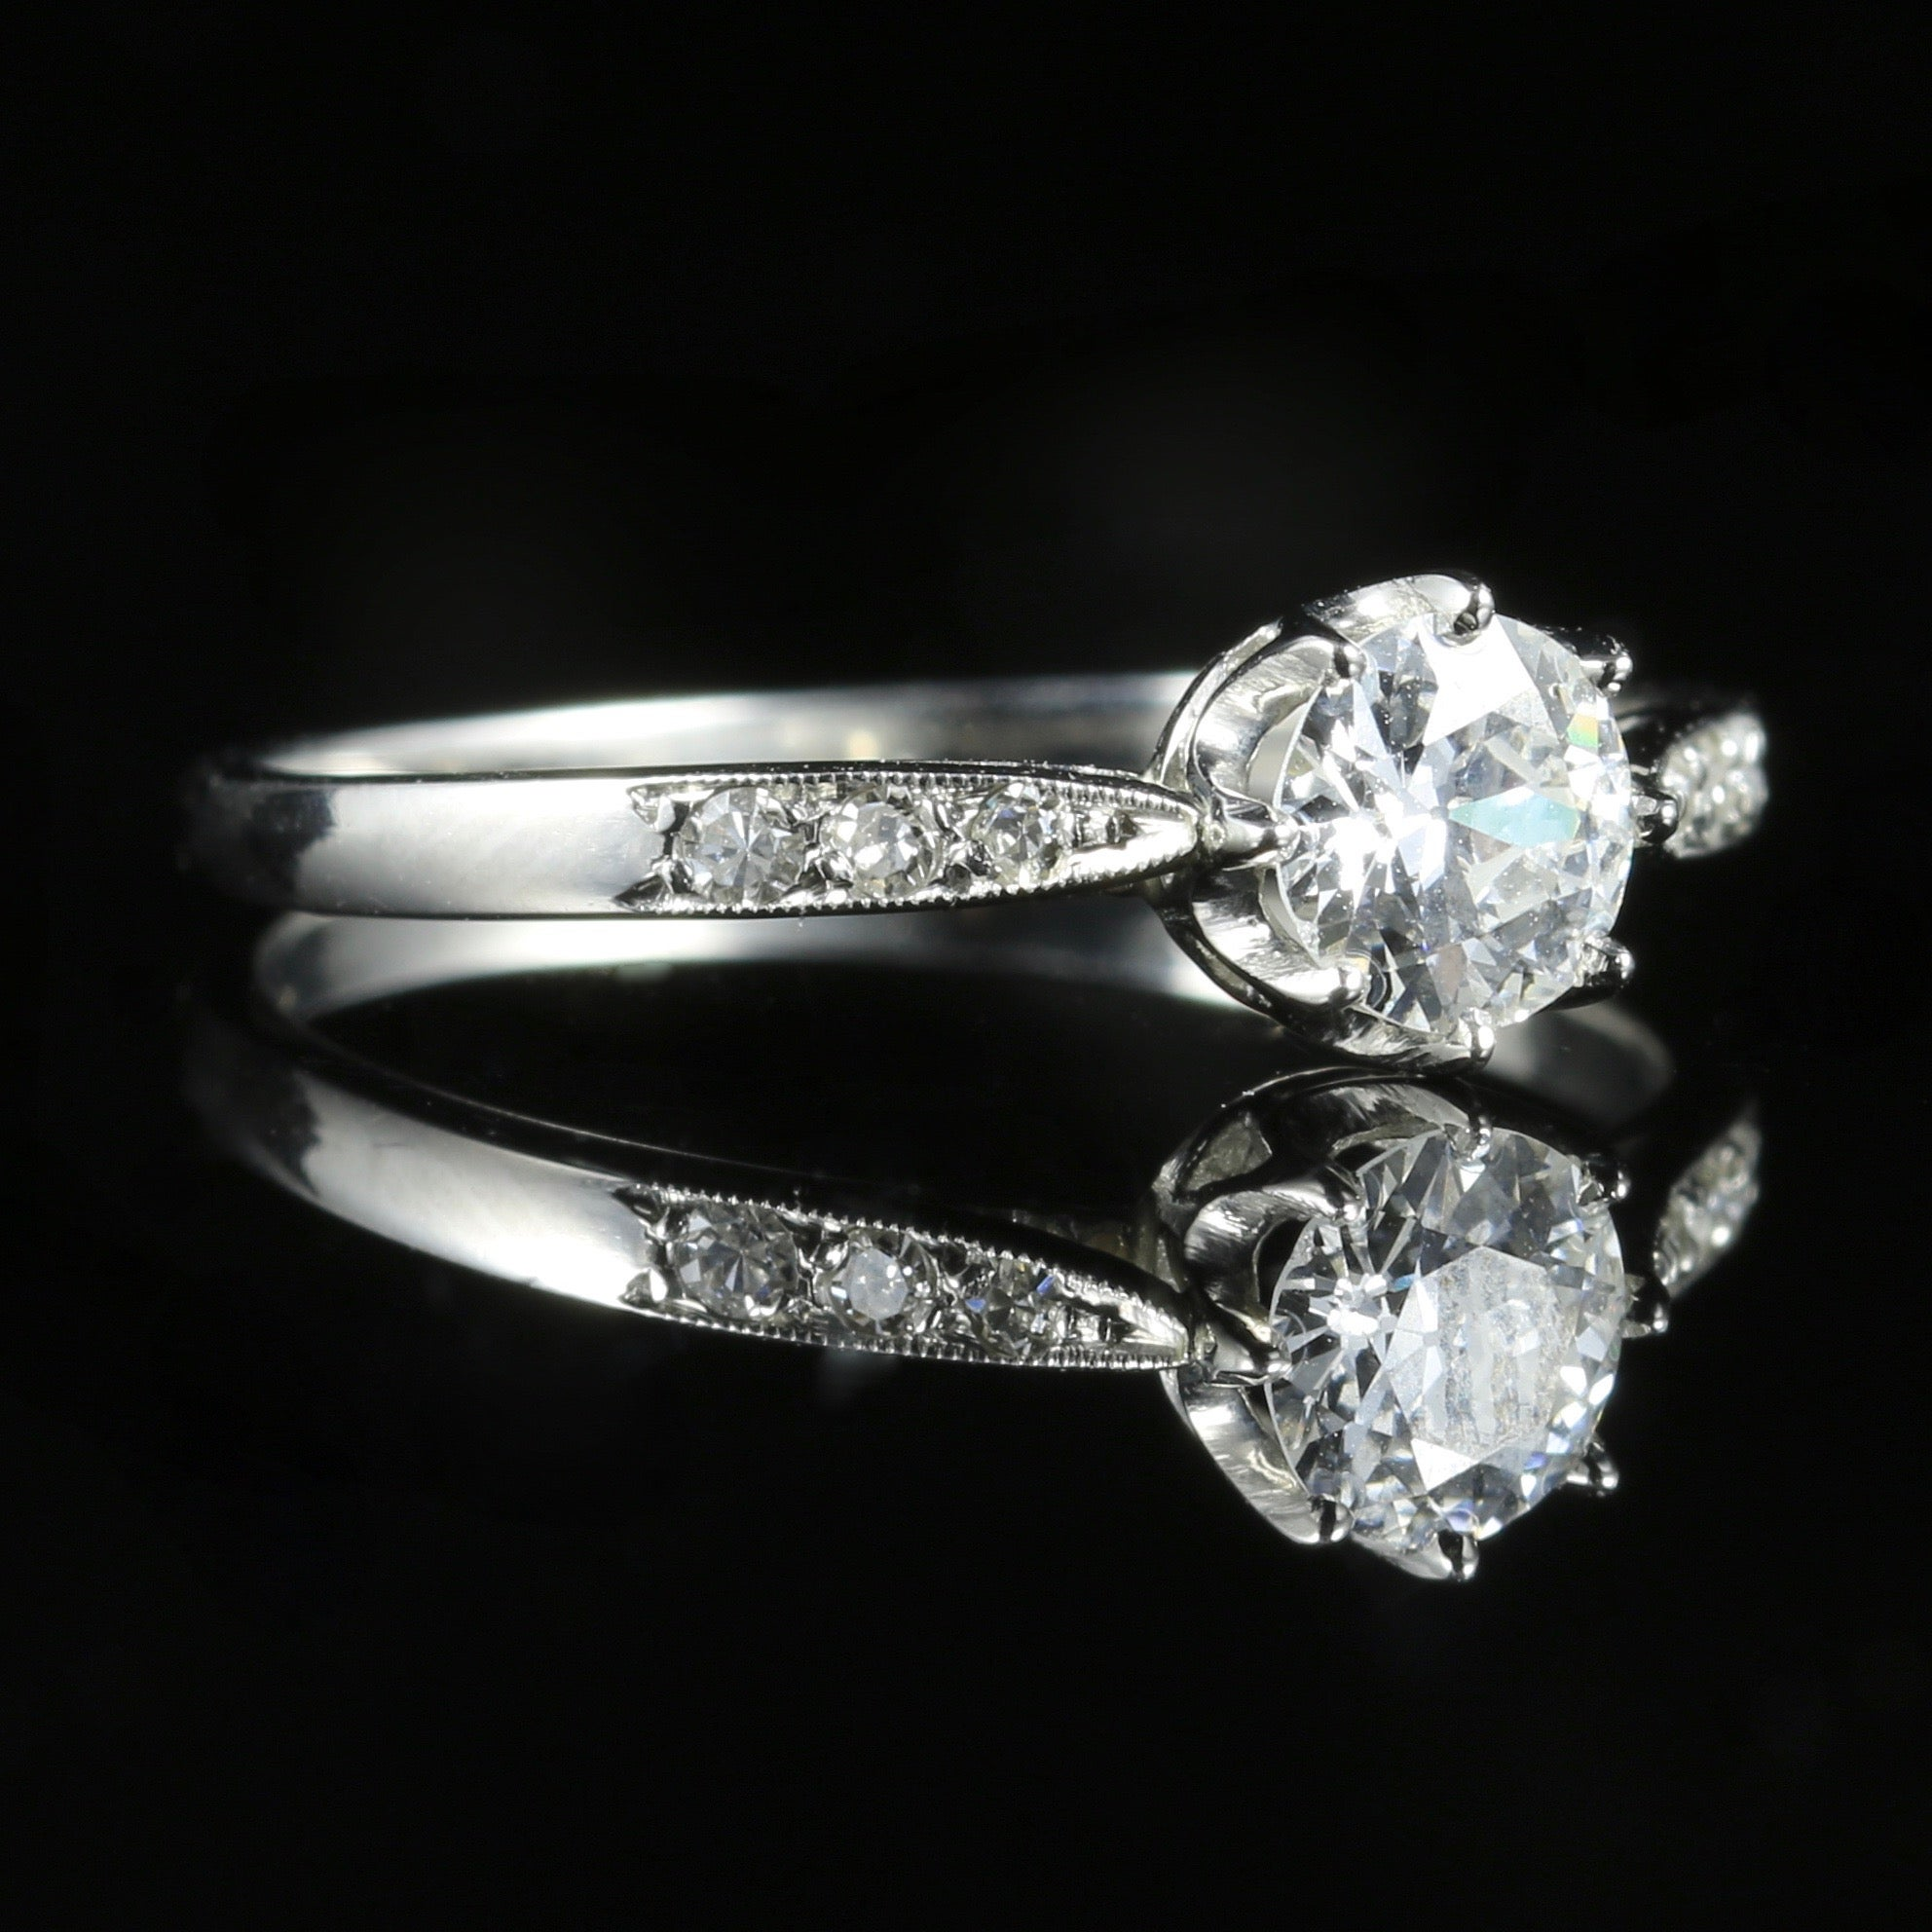 lane diamond rings engagement ring gypsy butter platinum antiques products